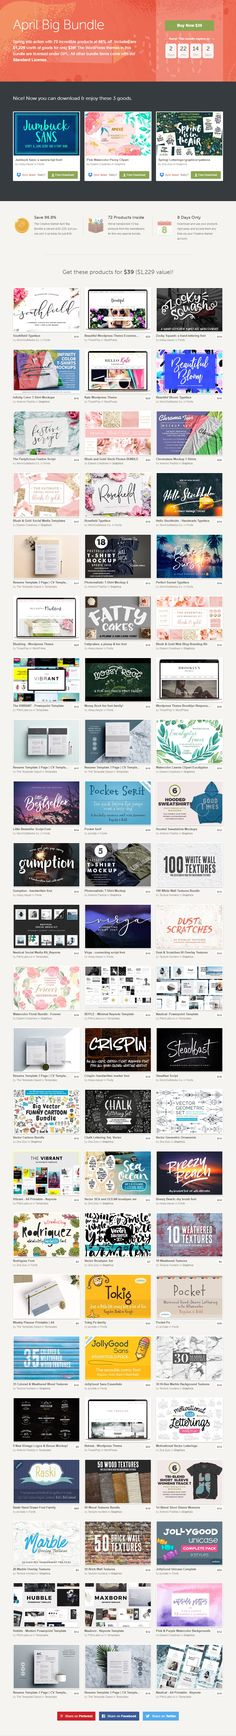 April Big Bundle #Spring into action with 72 incredible products at 96% off. Included are $1,229 worth of goods for only $39! ( #fonts #typeface #lettering #designers #freelancers #business #bloggers #photographers #agency #webdesign #wordpress #ecommerce #corporate #patterns #freebies #mockups #presentation #keynote #cv #vector #watercolor #artist )